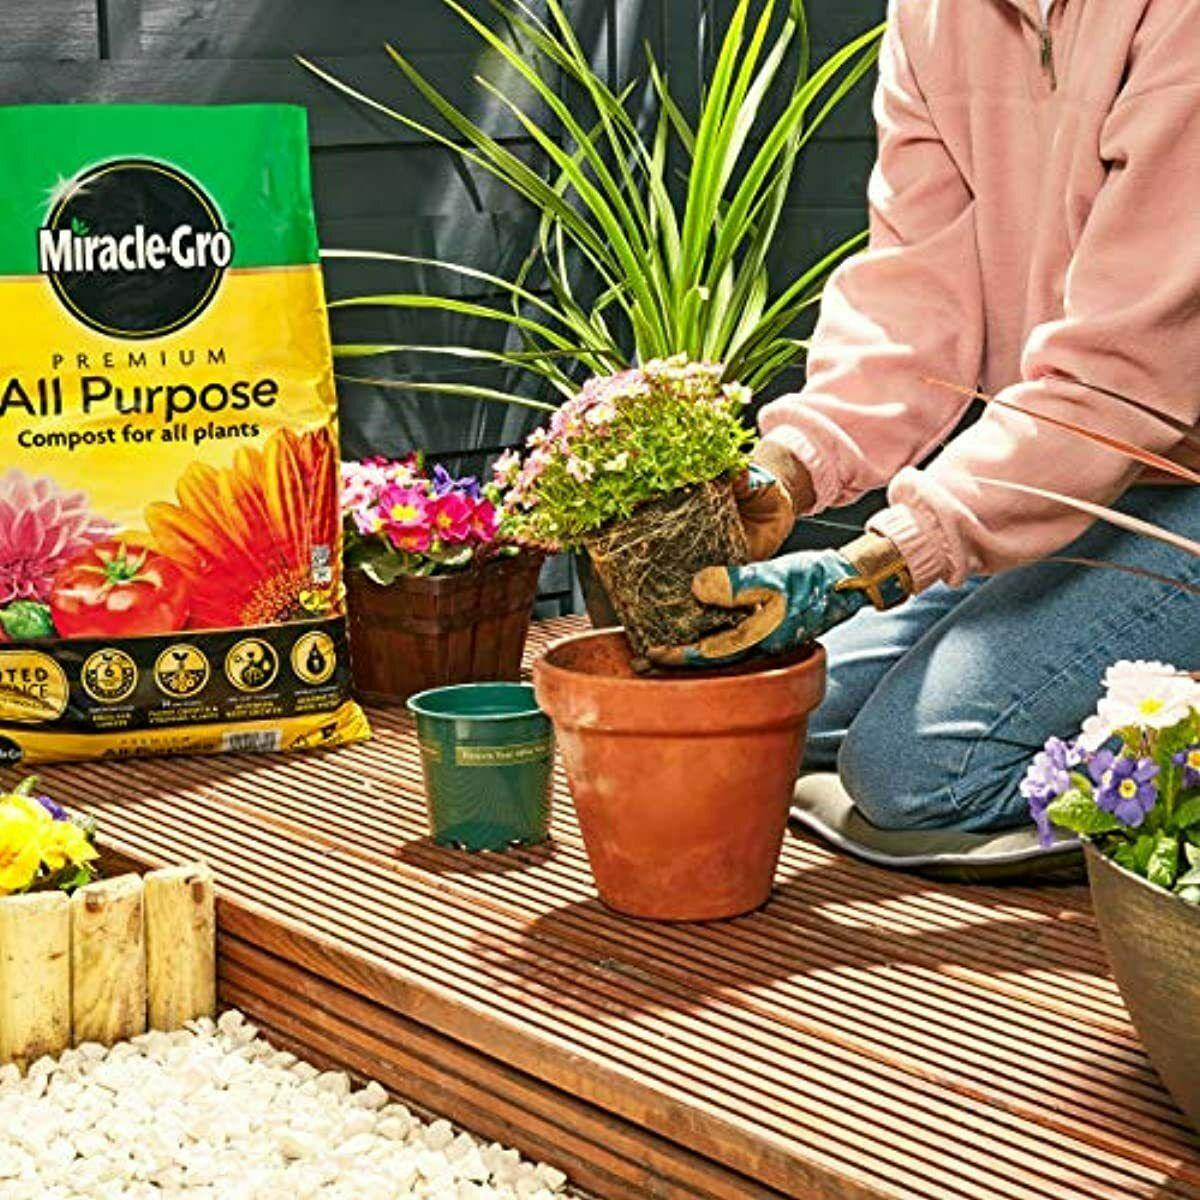 Miracle gro compost lifestyle